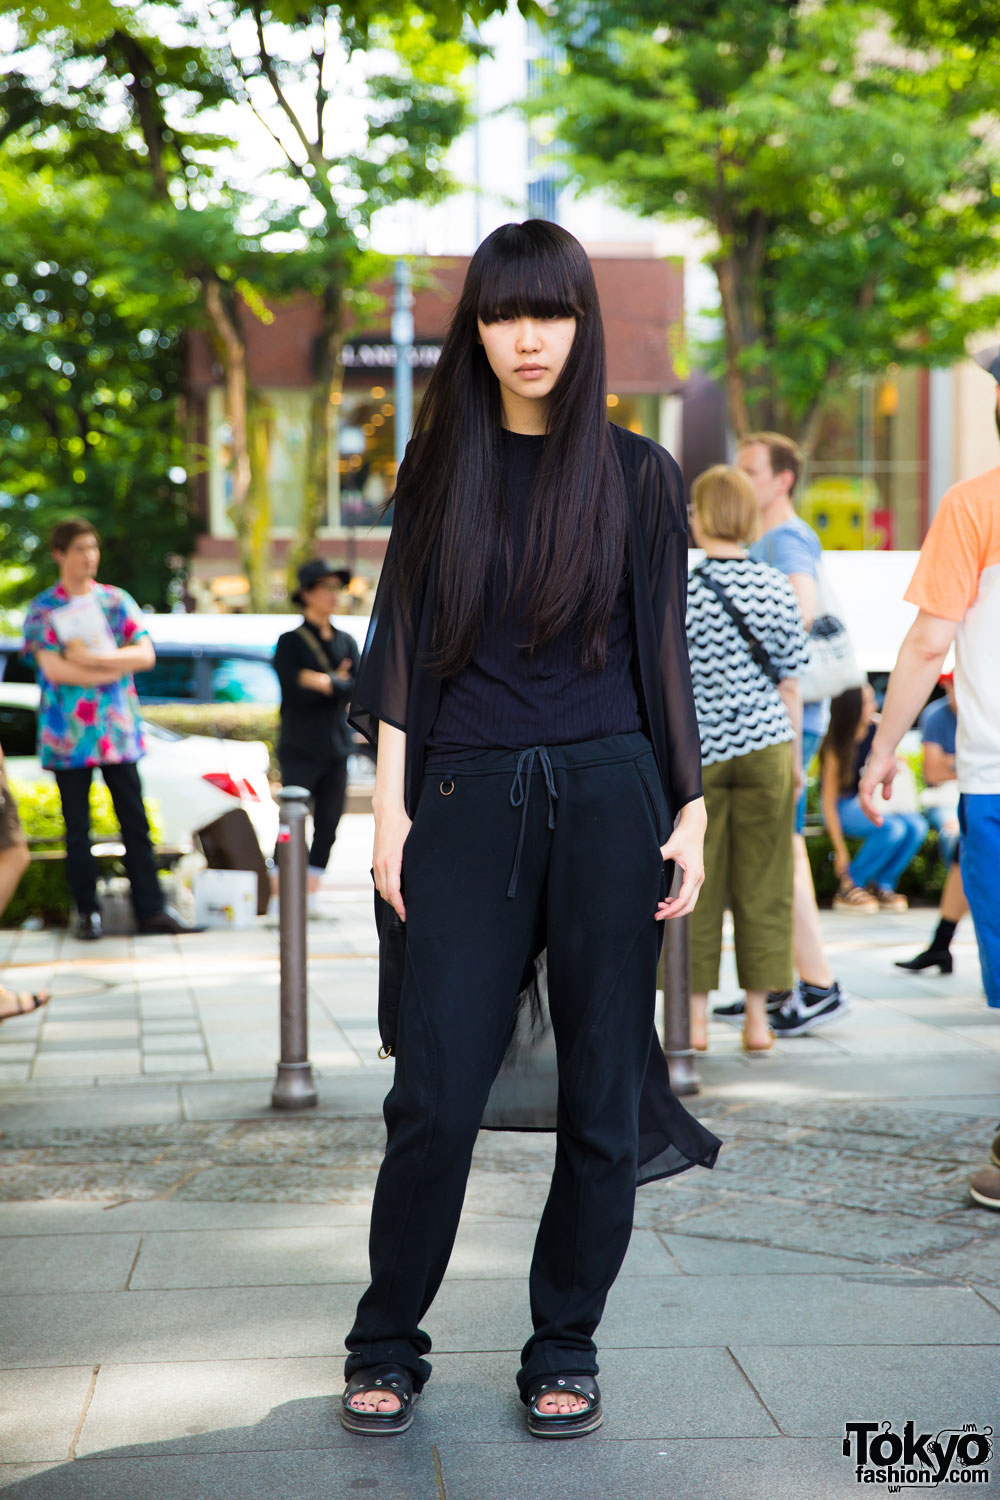 Japanese Fashion Model S All Black Minimalist Fashion